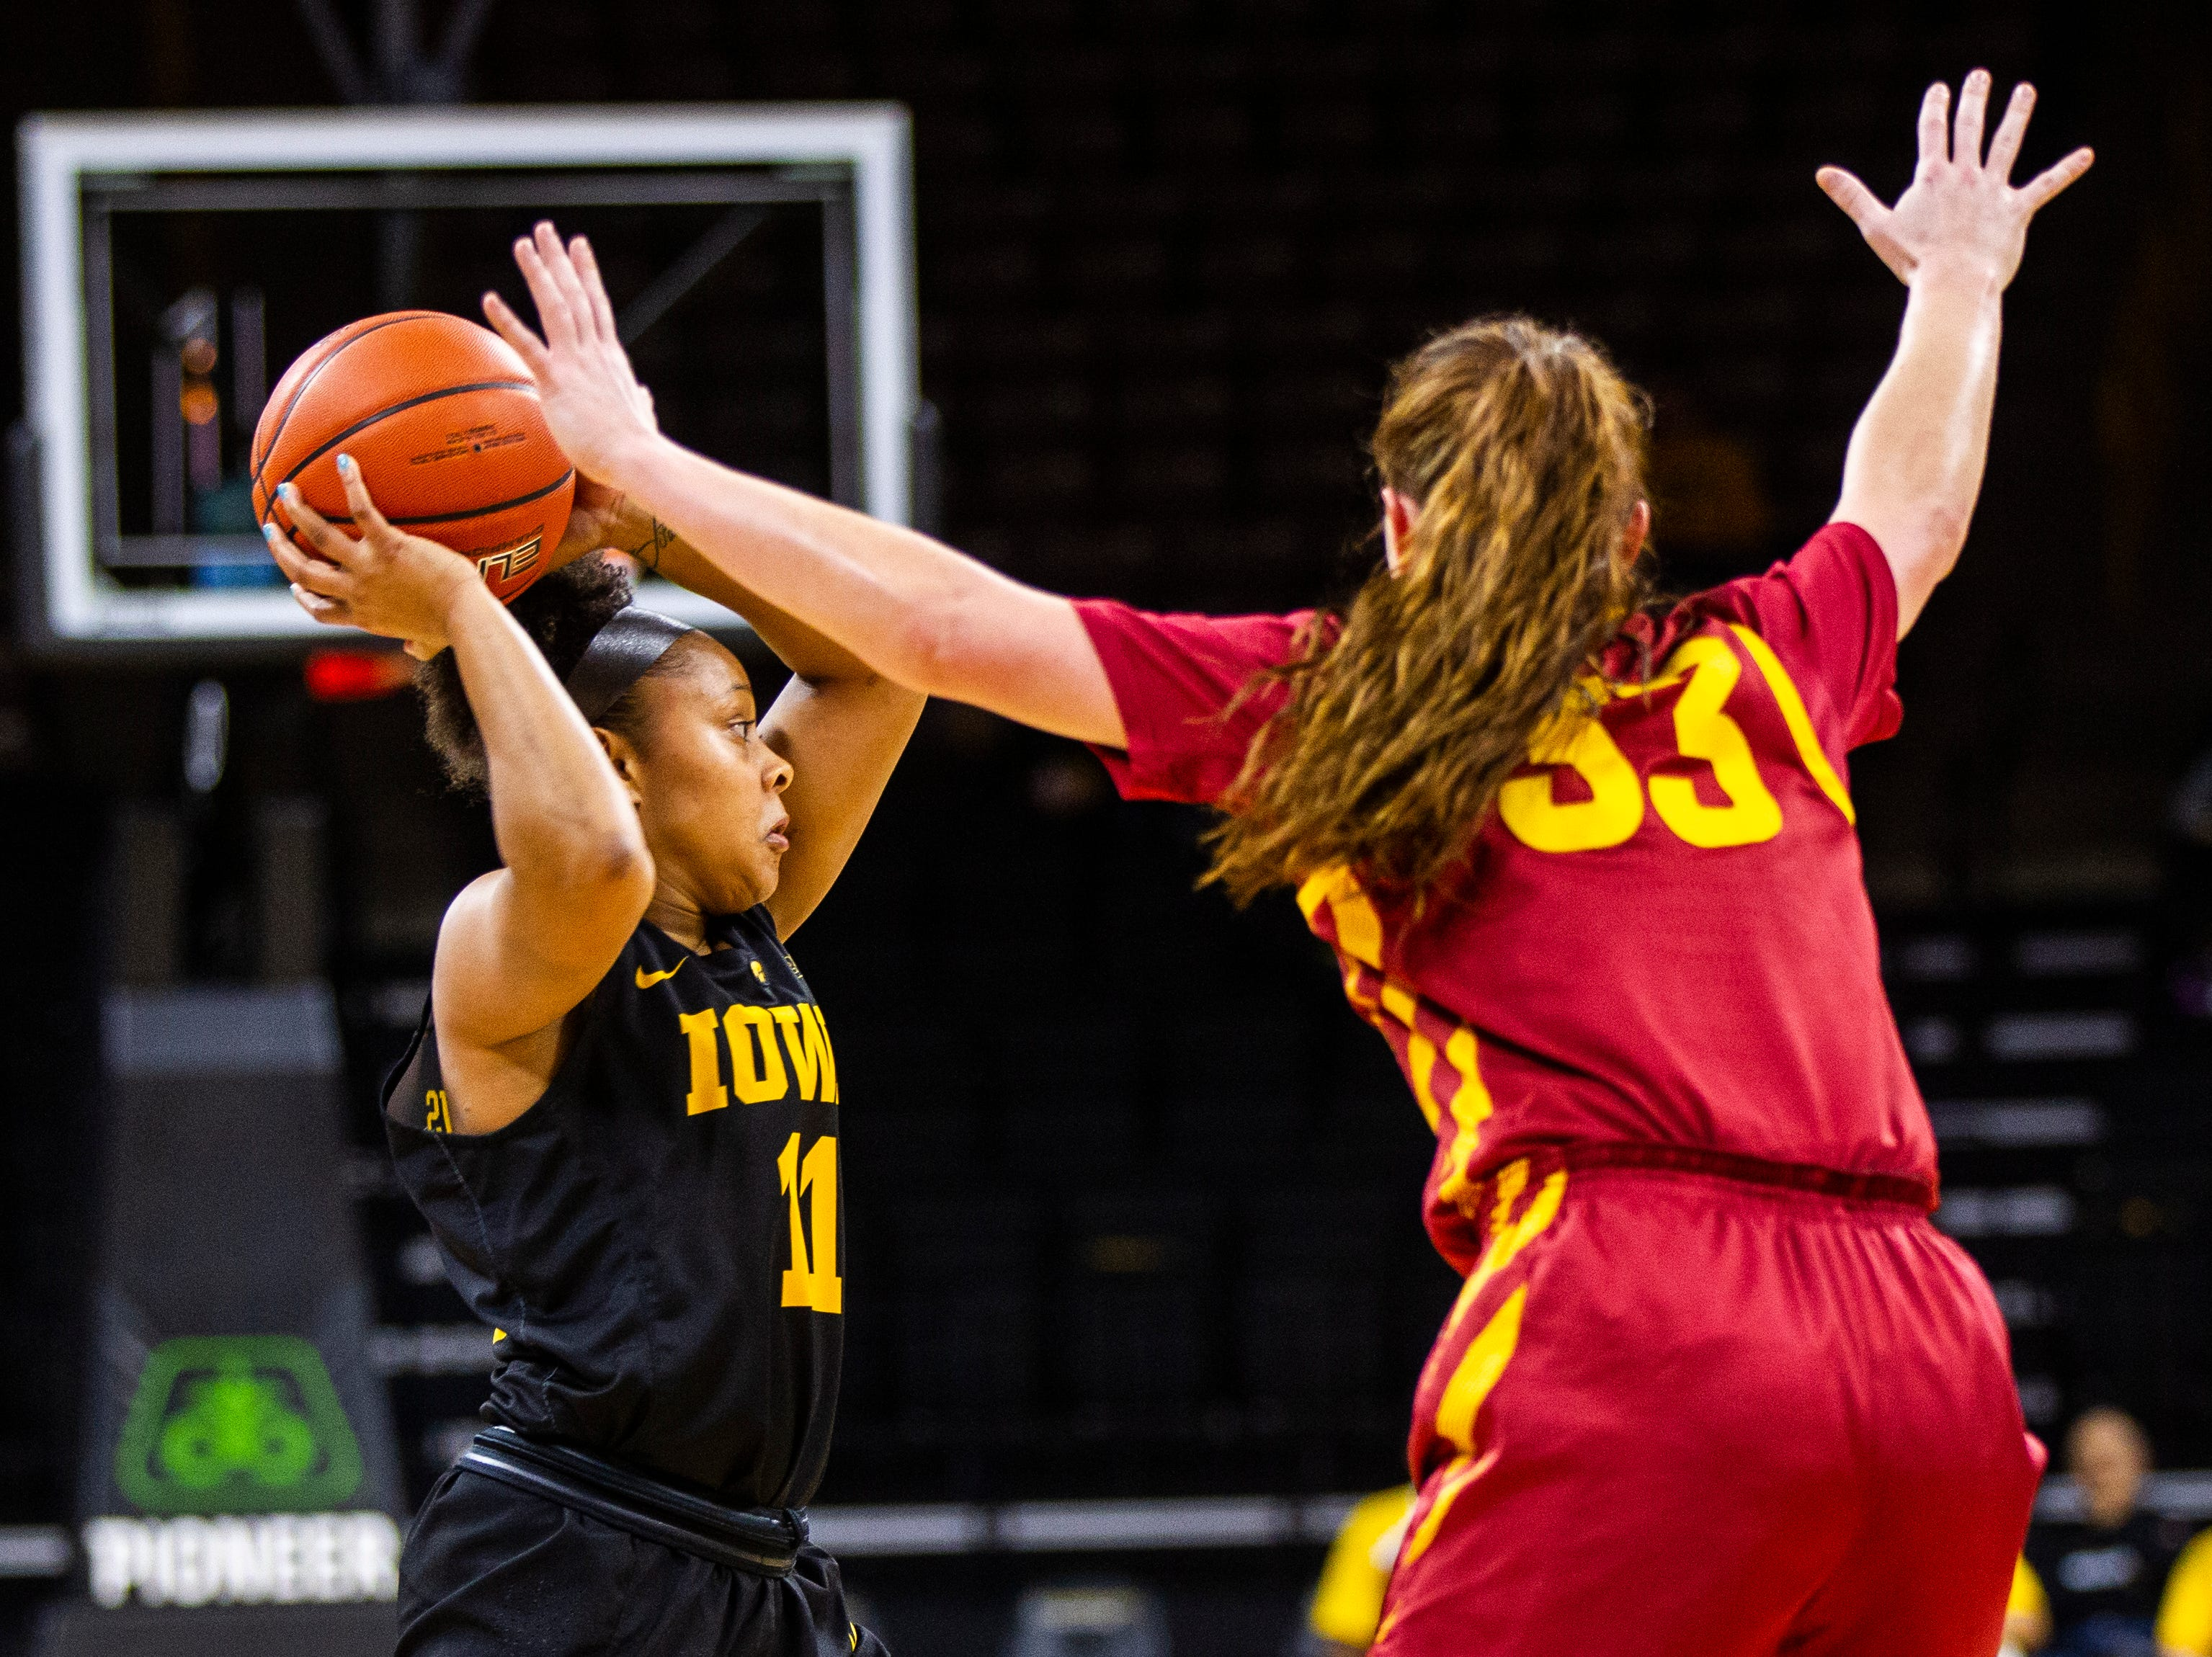 Iowa guard Tania Davis (11) passes during a Cy-Hawk series NCAA women's basketball game on Wednesday, Dec. 5, 2018, at Carver-Hawkeye Arena in Iowa City.